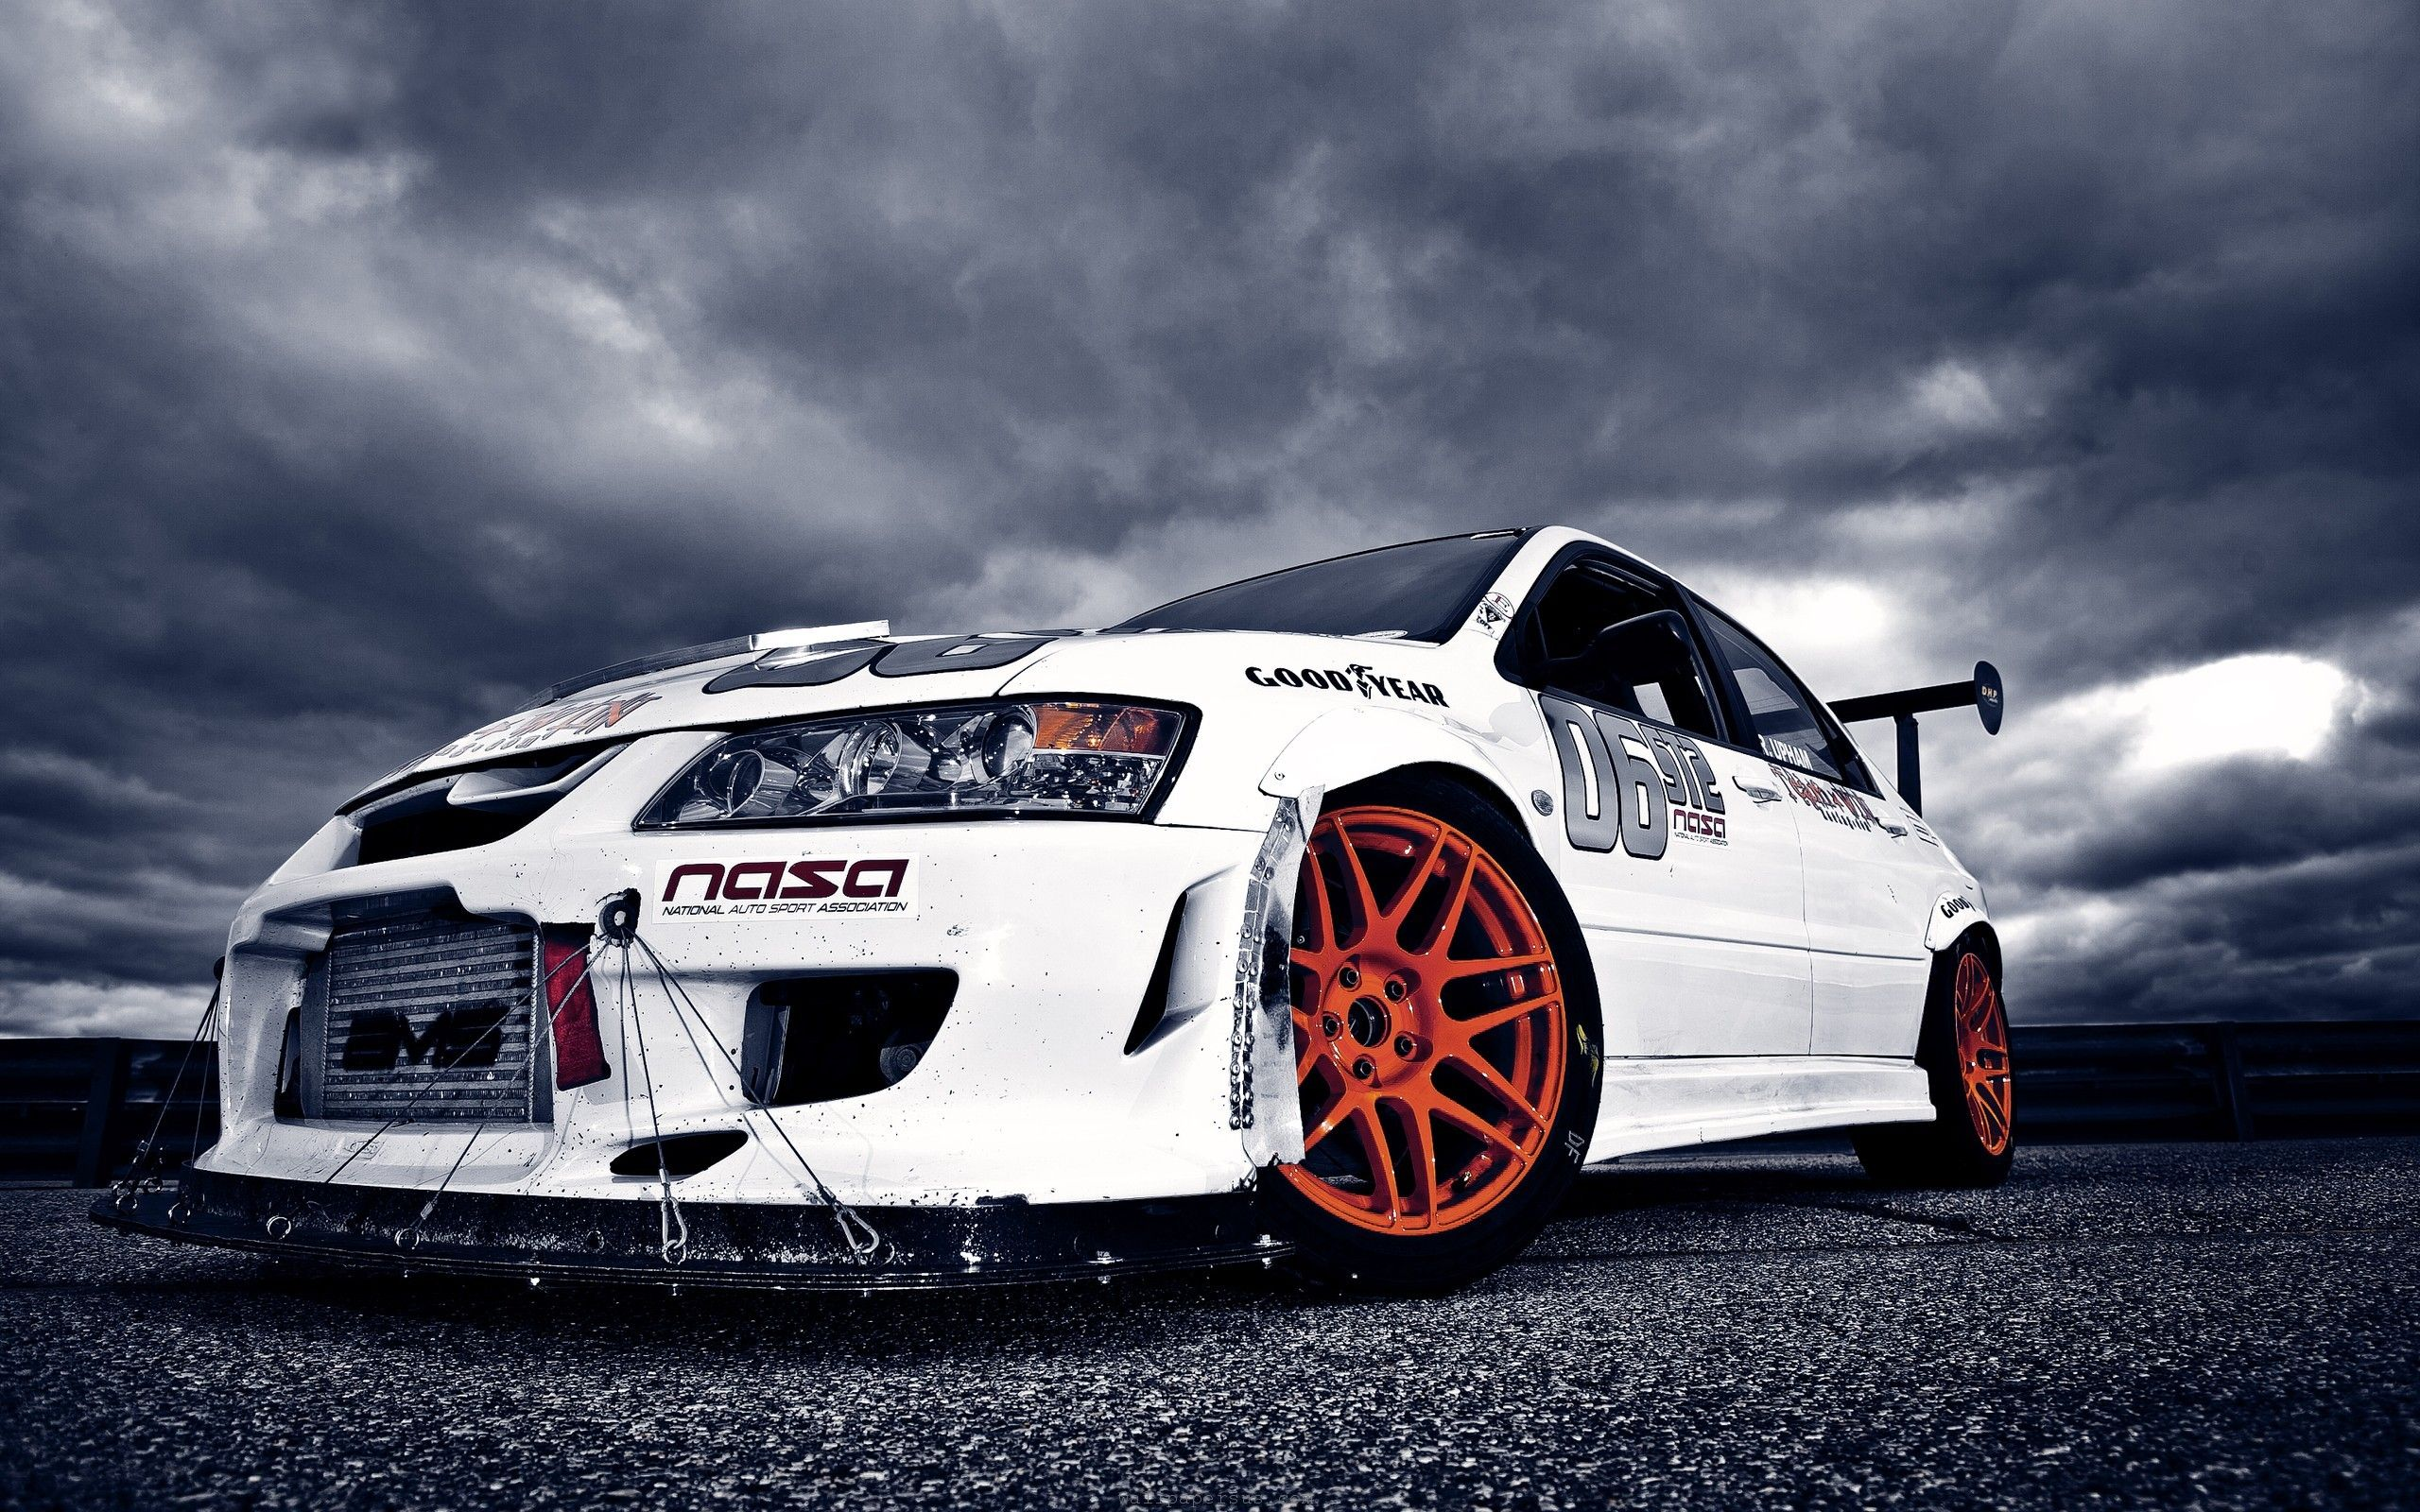 White Modified Mitsubishi Lancer Hd Wallpaper Supercar Poster